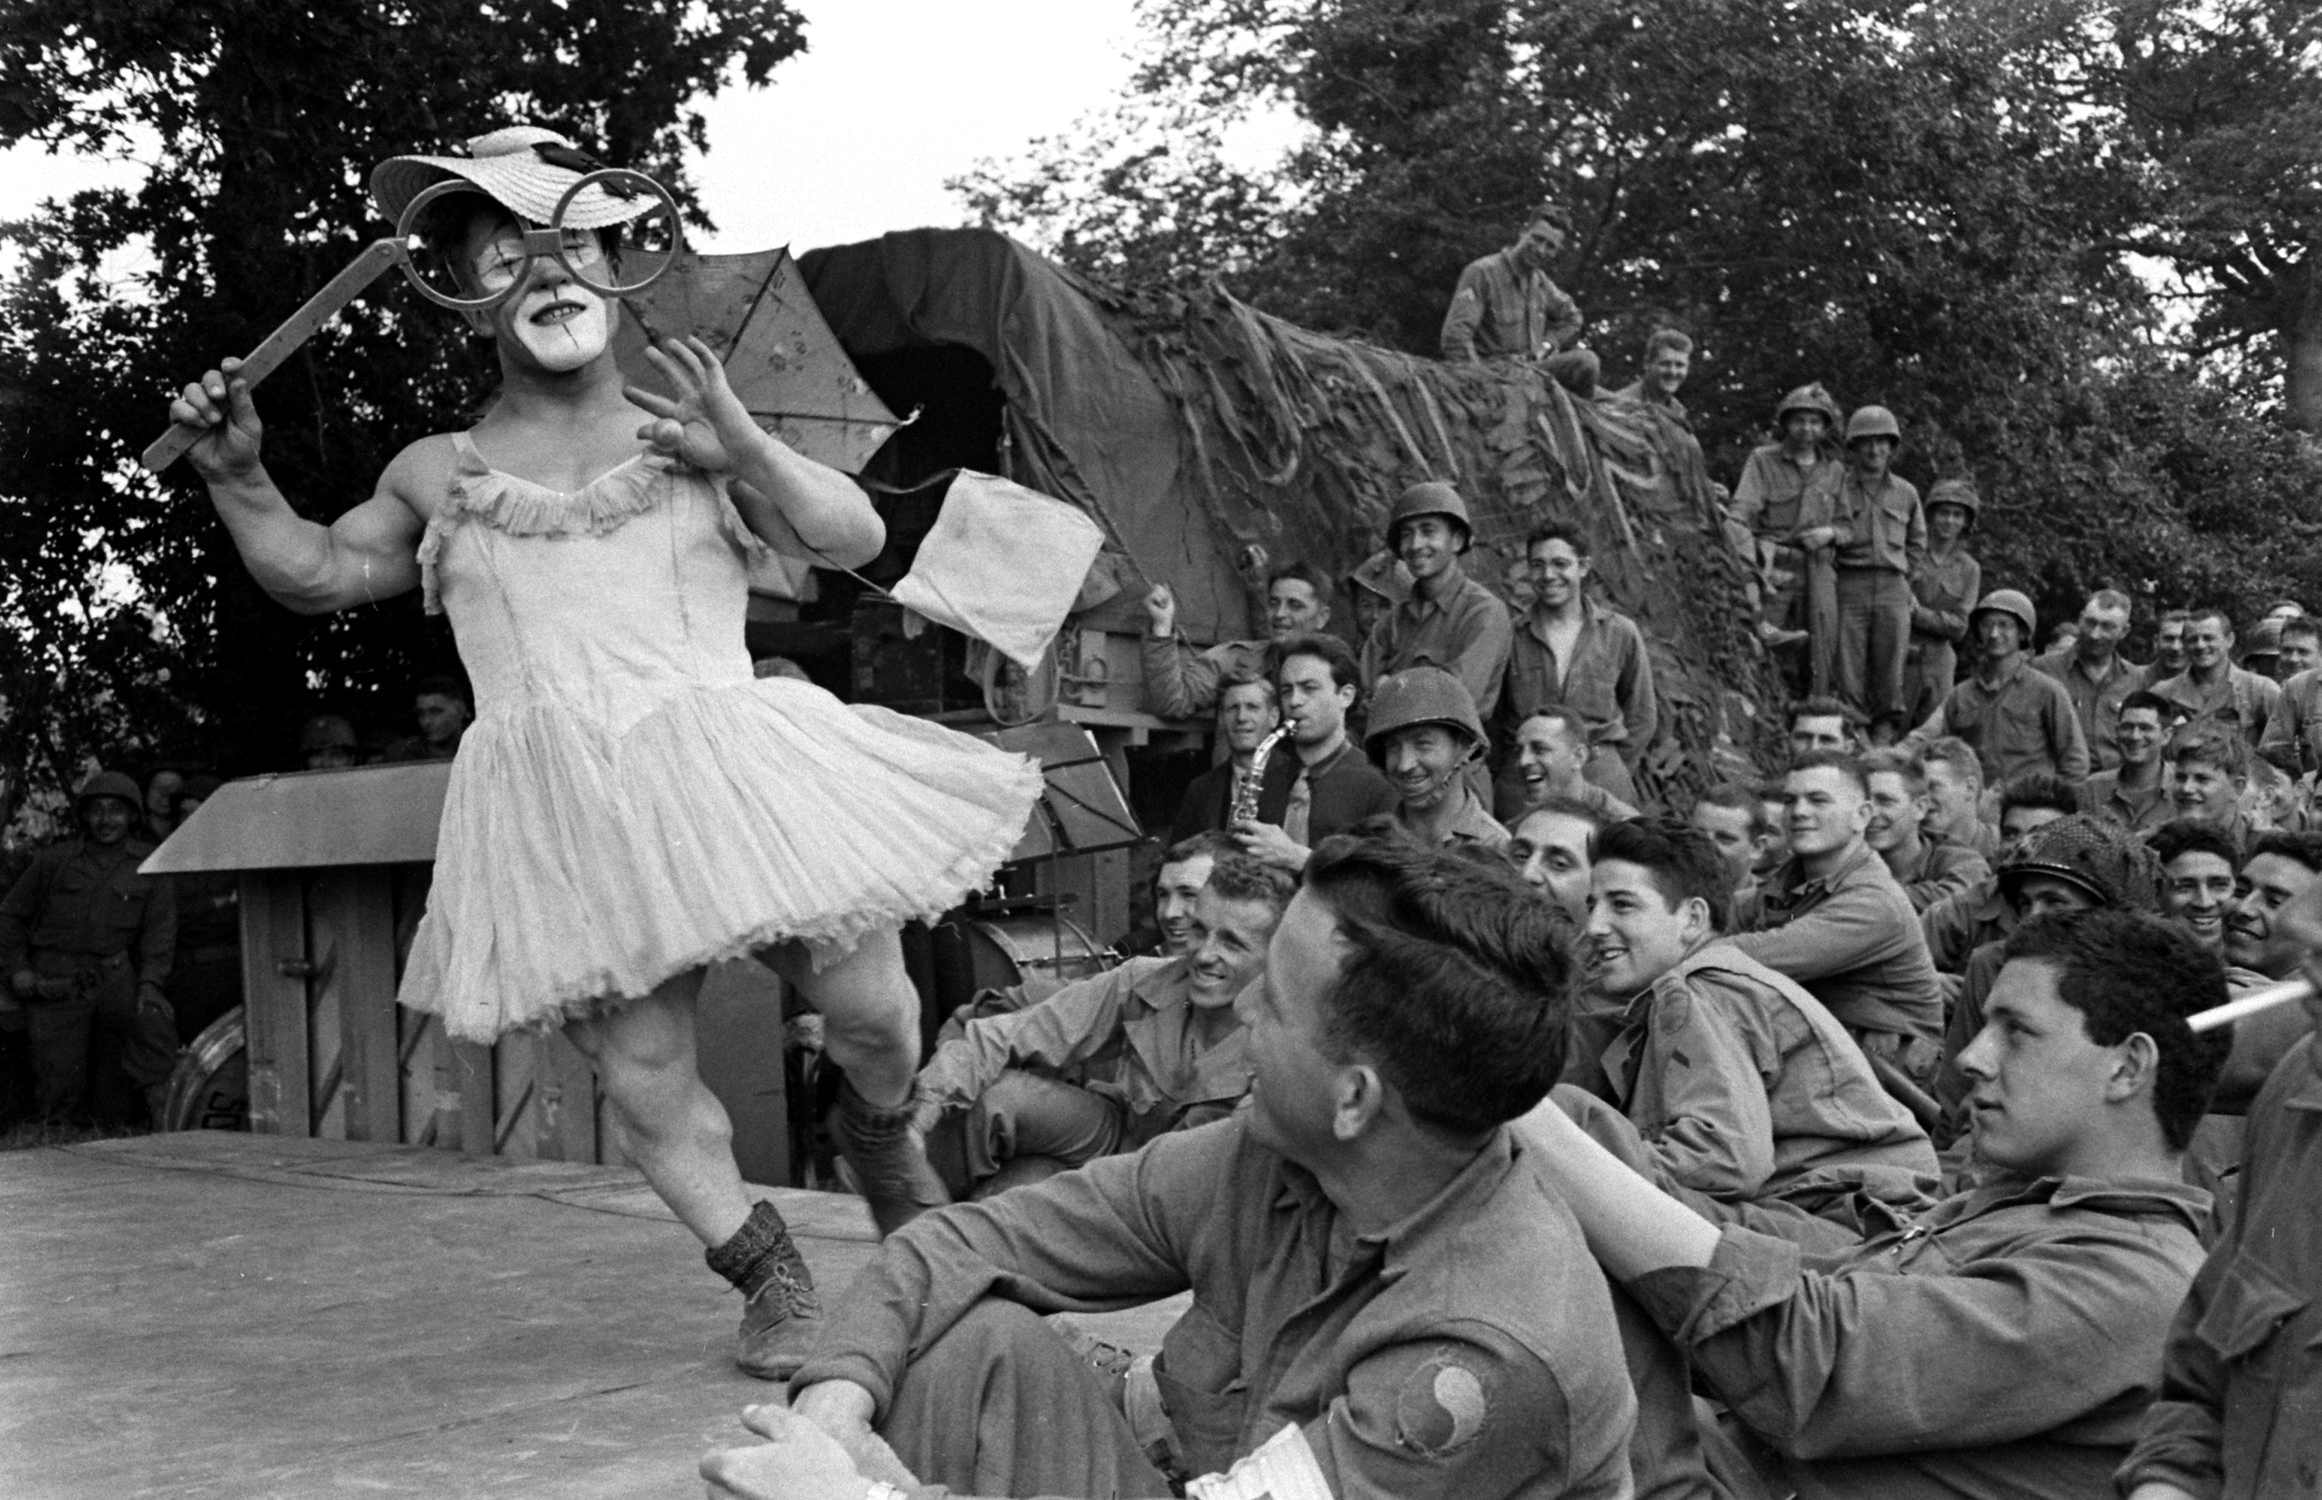 A clown on stage at show for U.S. troops after D-Day, Normandy, 1944.